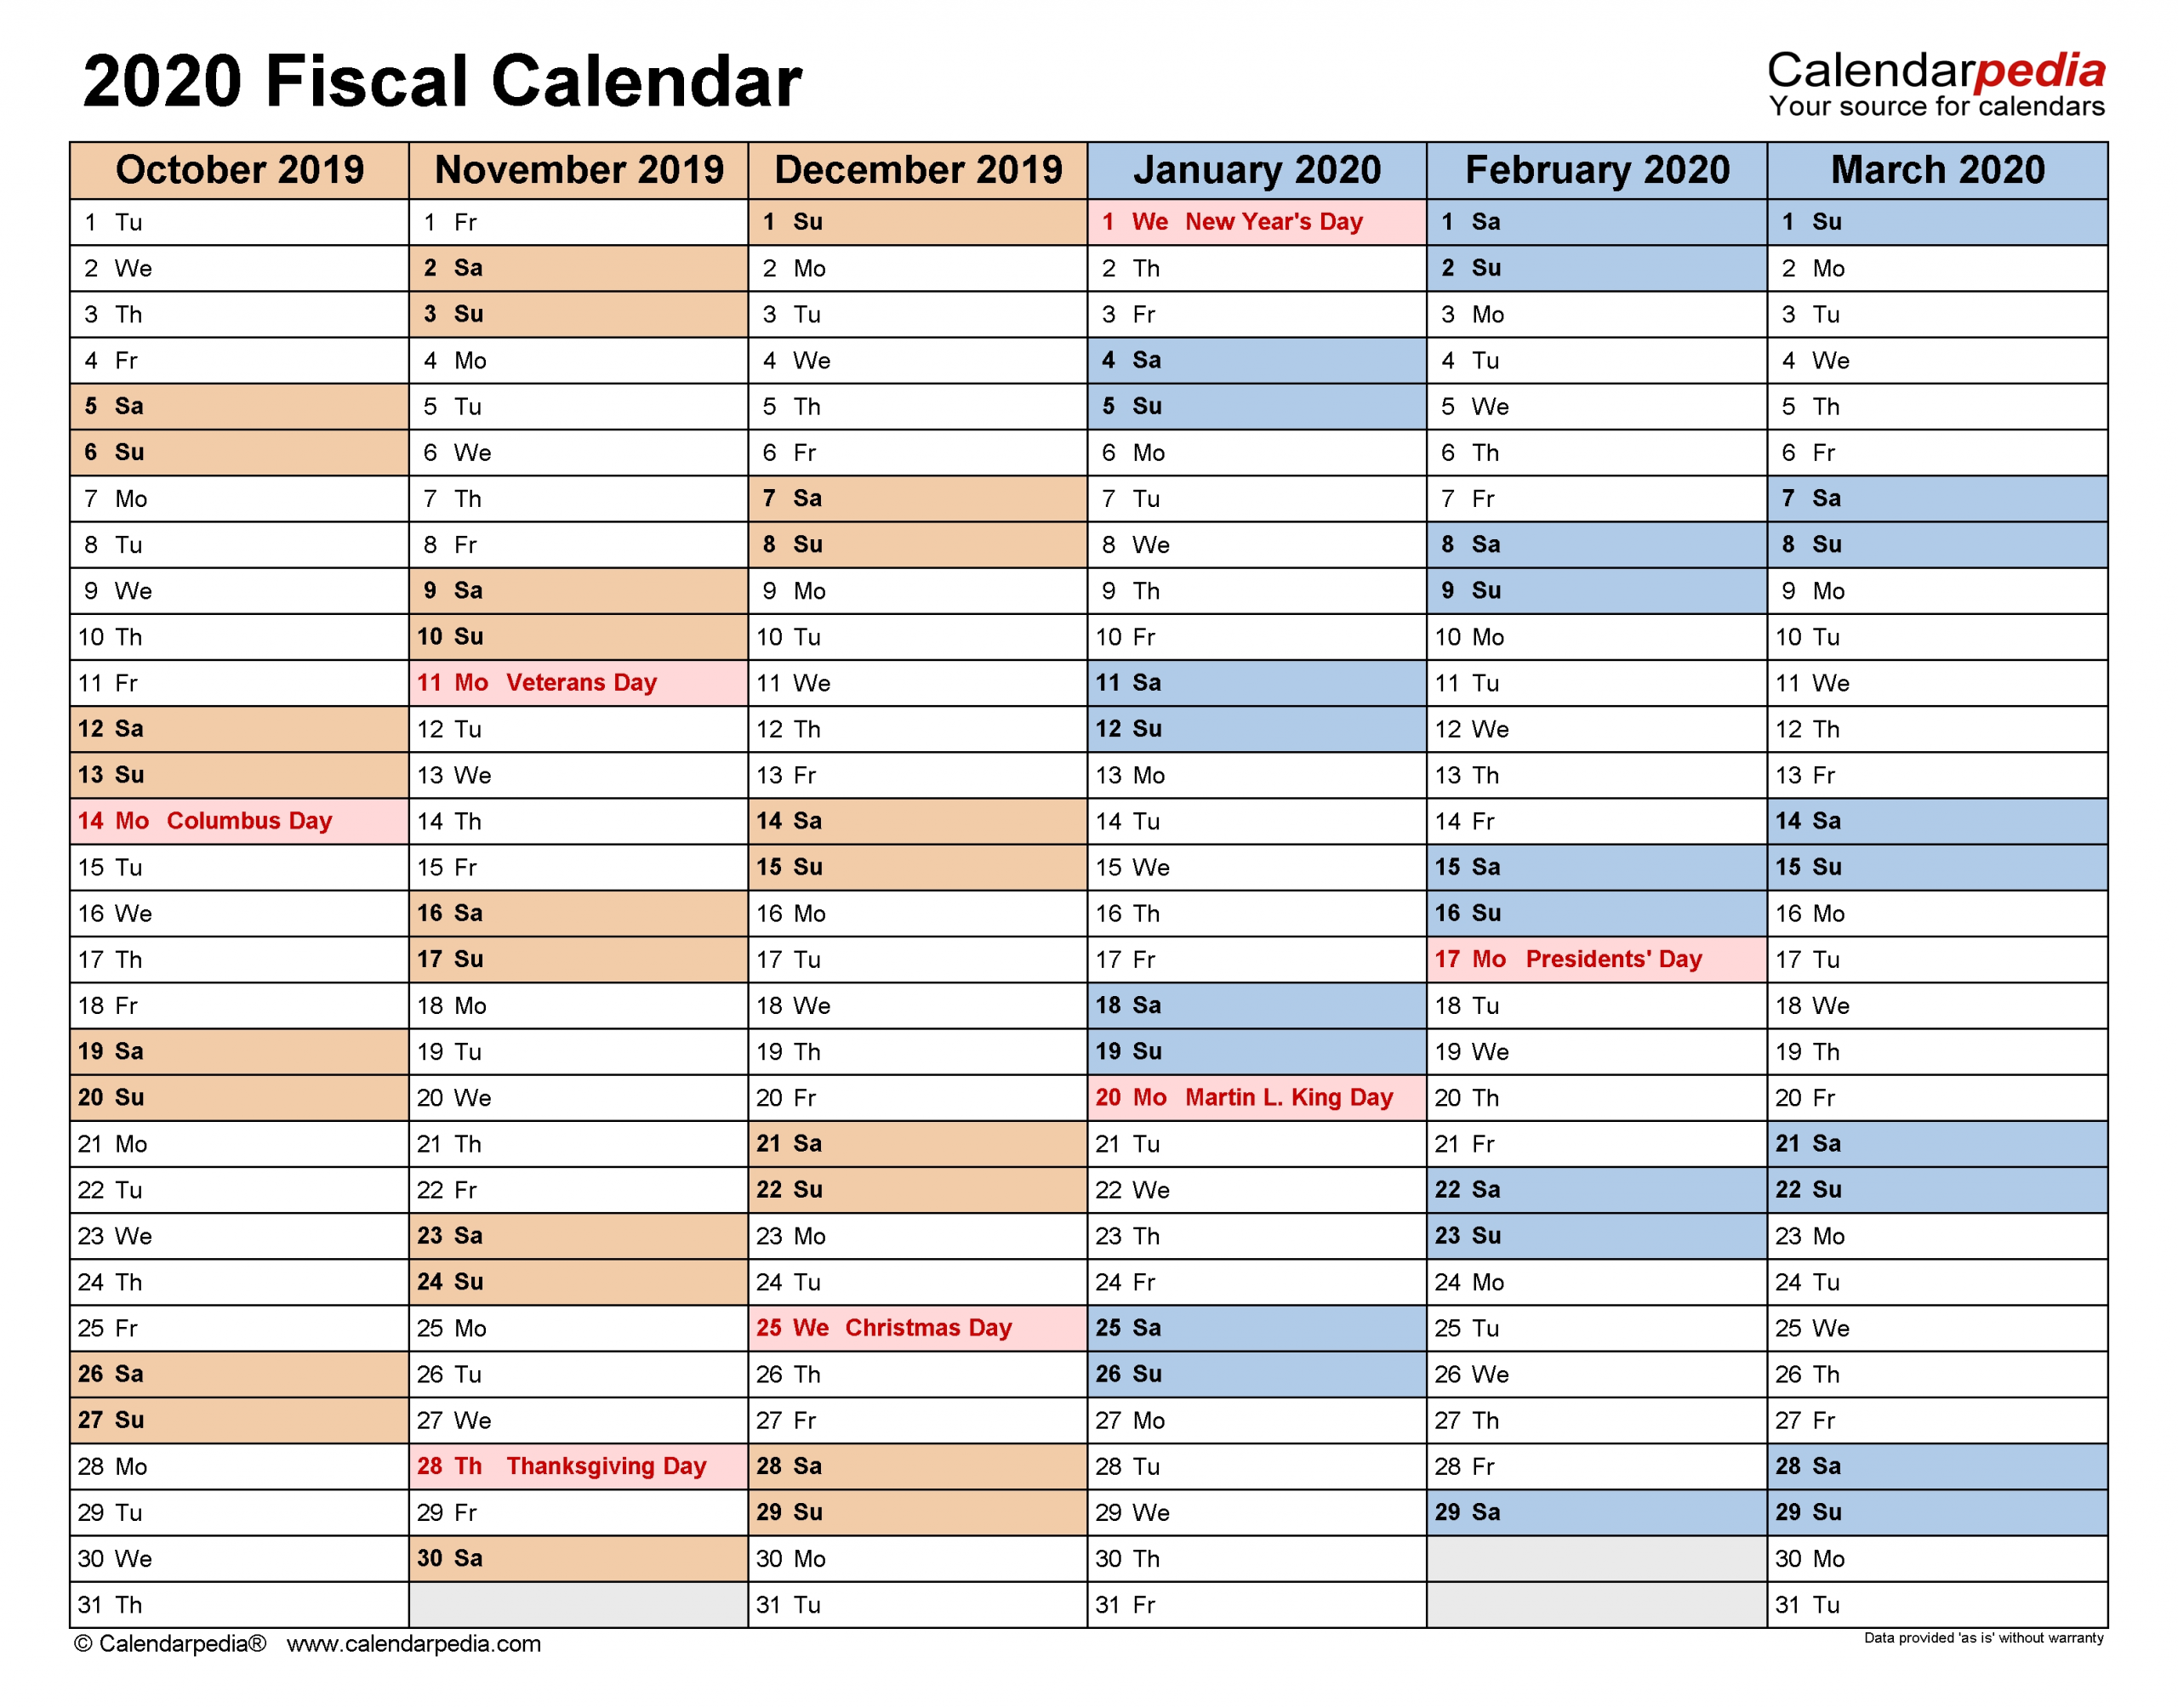 Catch What Week Is This Date Of The Financial Year